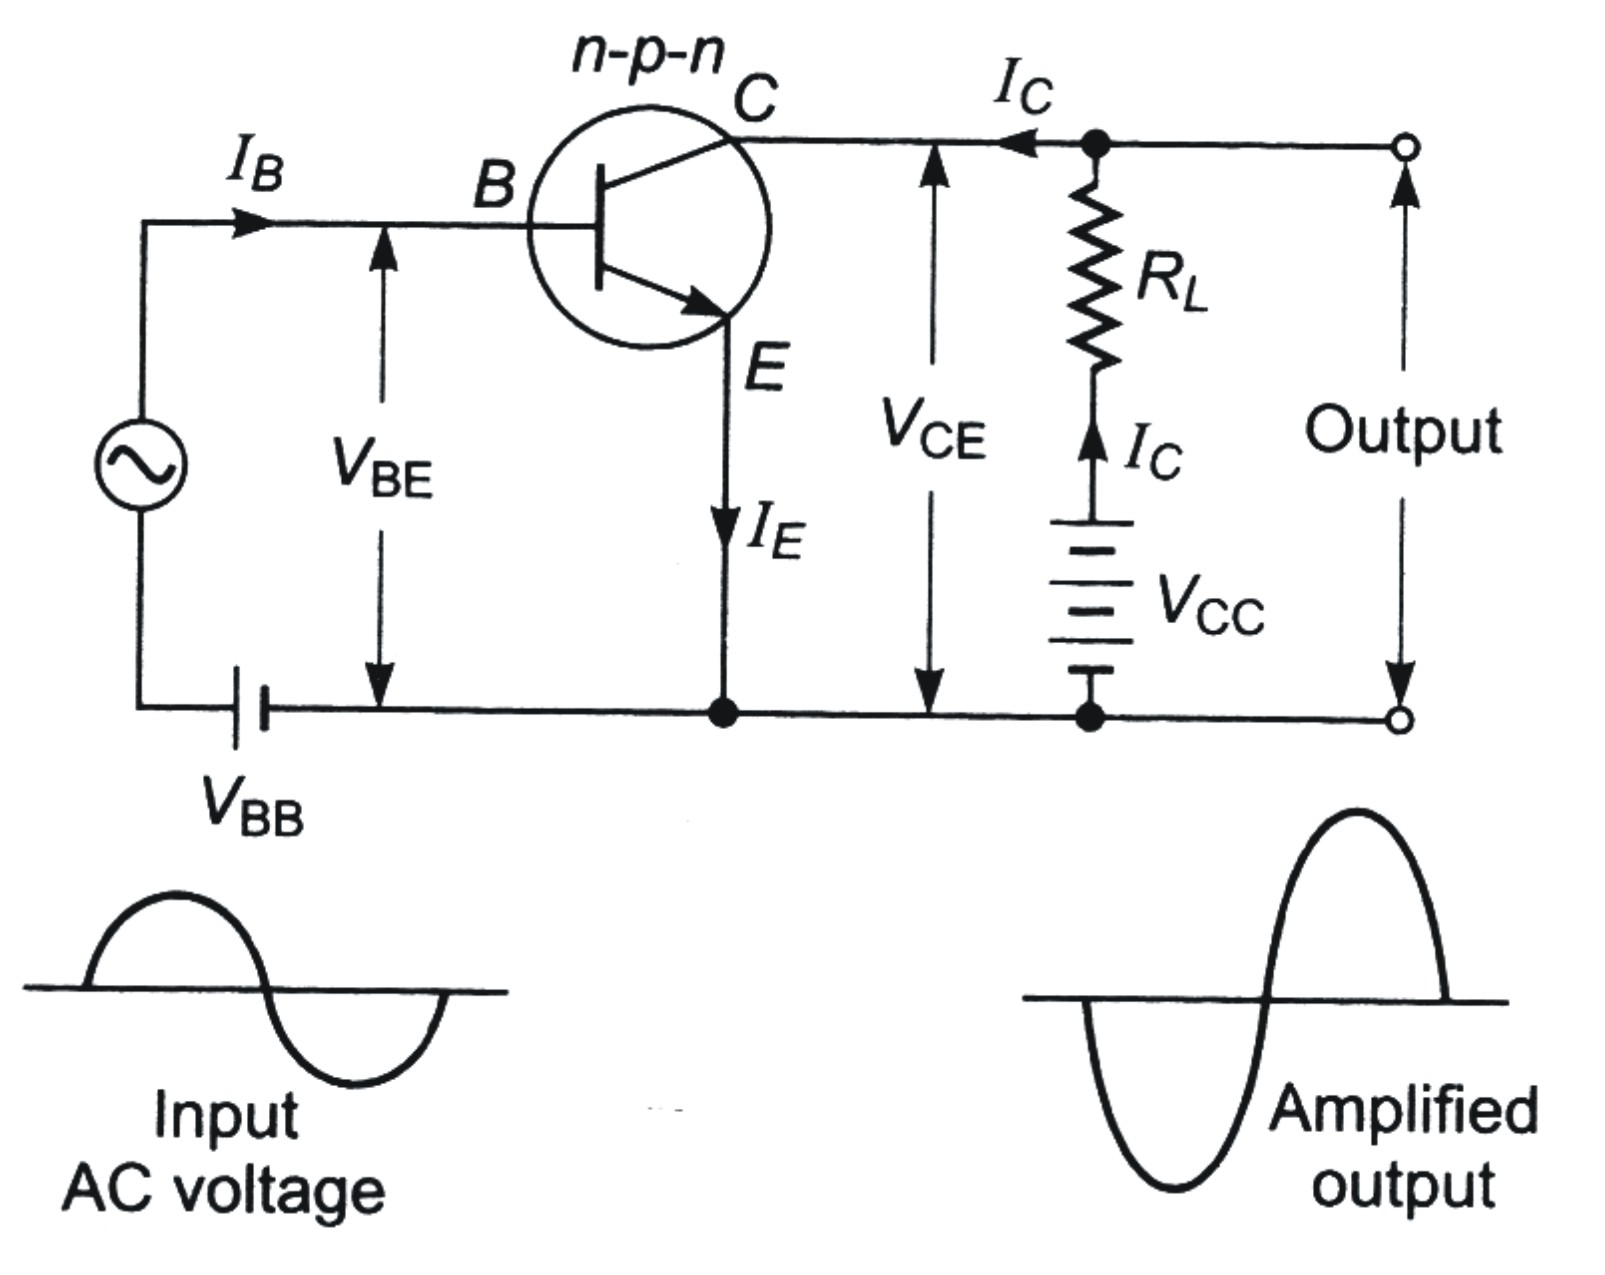 transistor as an amplifier circuit diagram  u2013 readingrat net